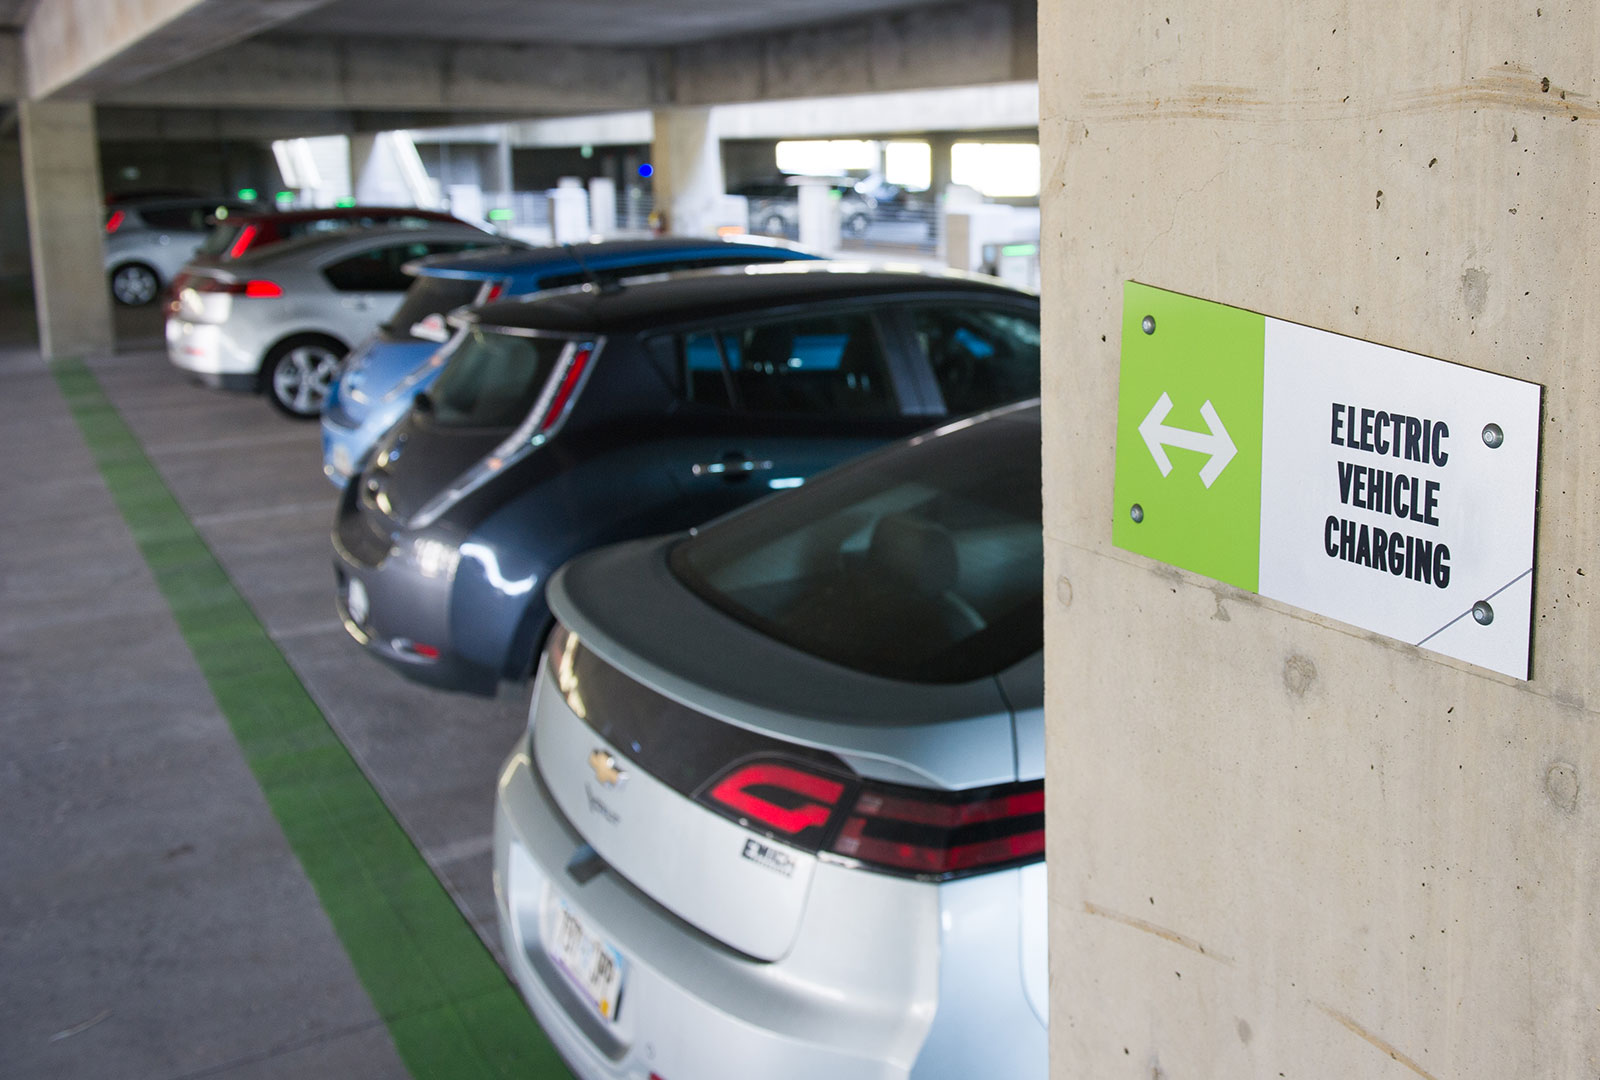 Vermont city hopes 'Airbnb for EV charging' will give renters new options